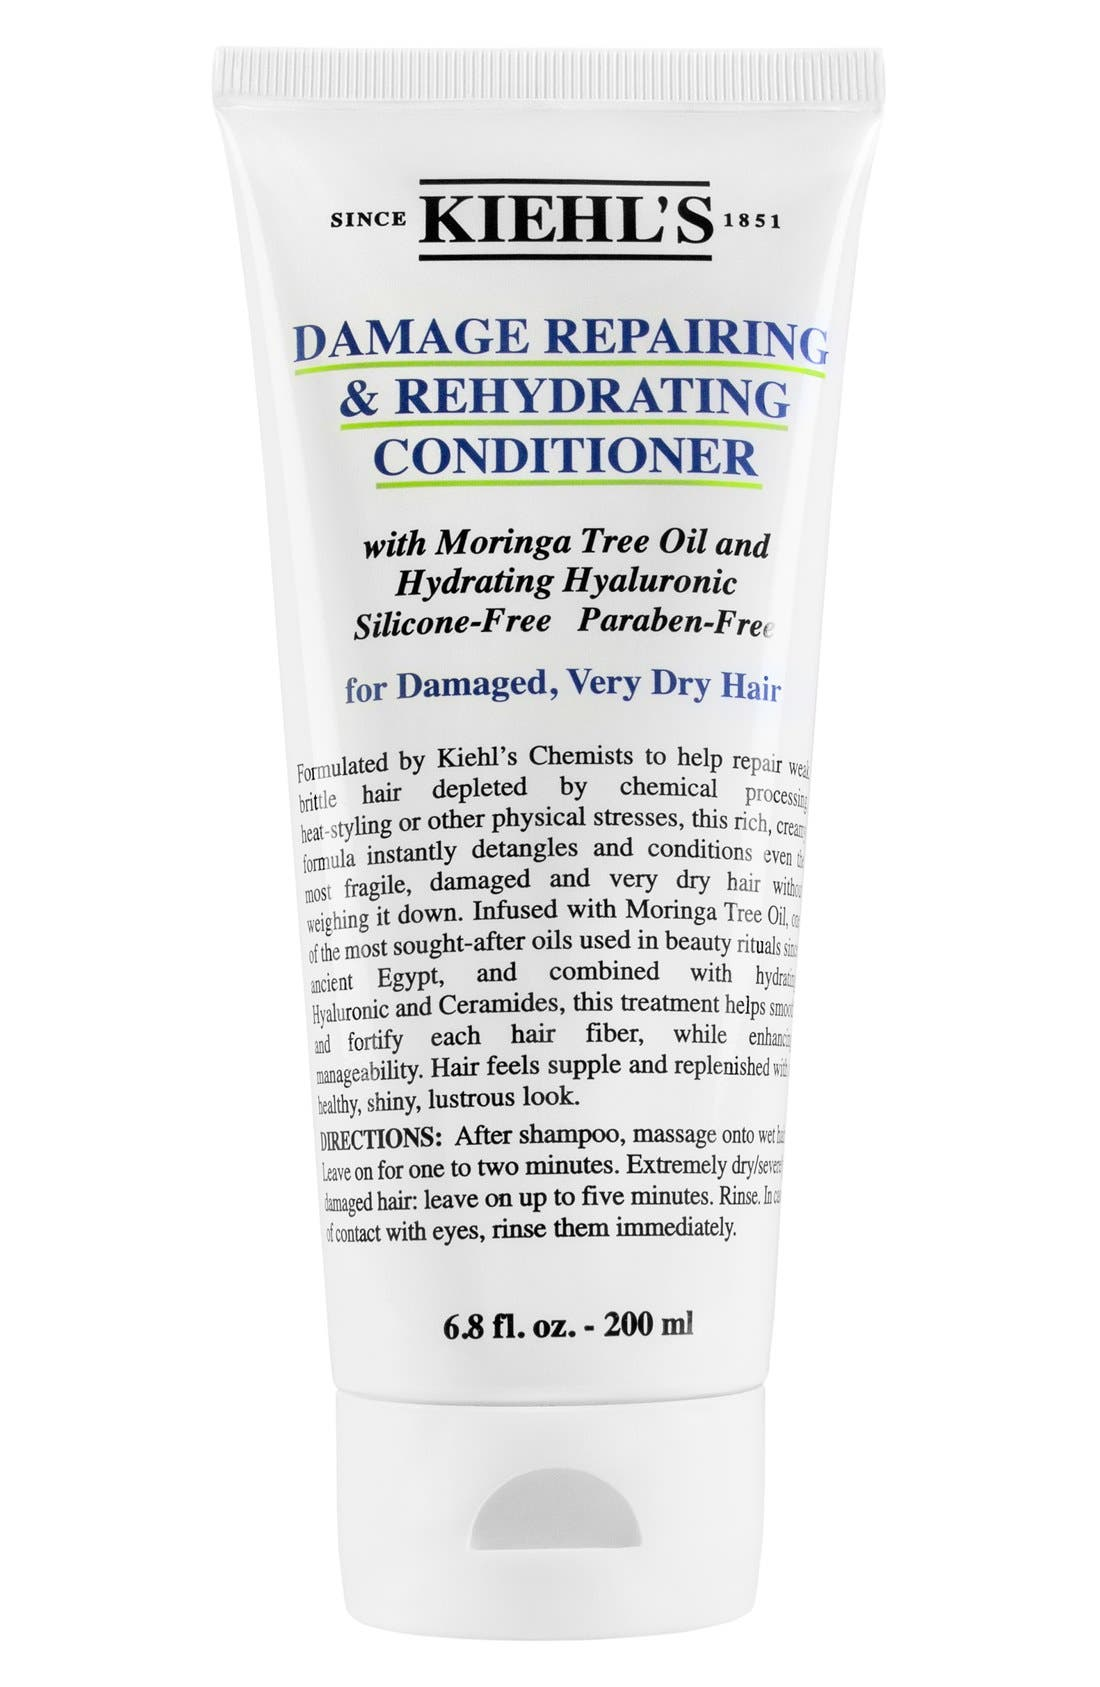 Kiehl's Since 1851 Damage Repairing & Rehydrating Conditioner